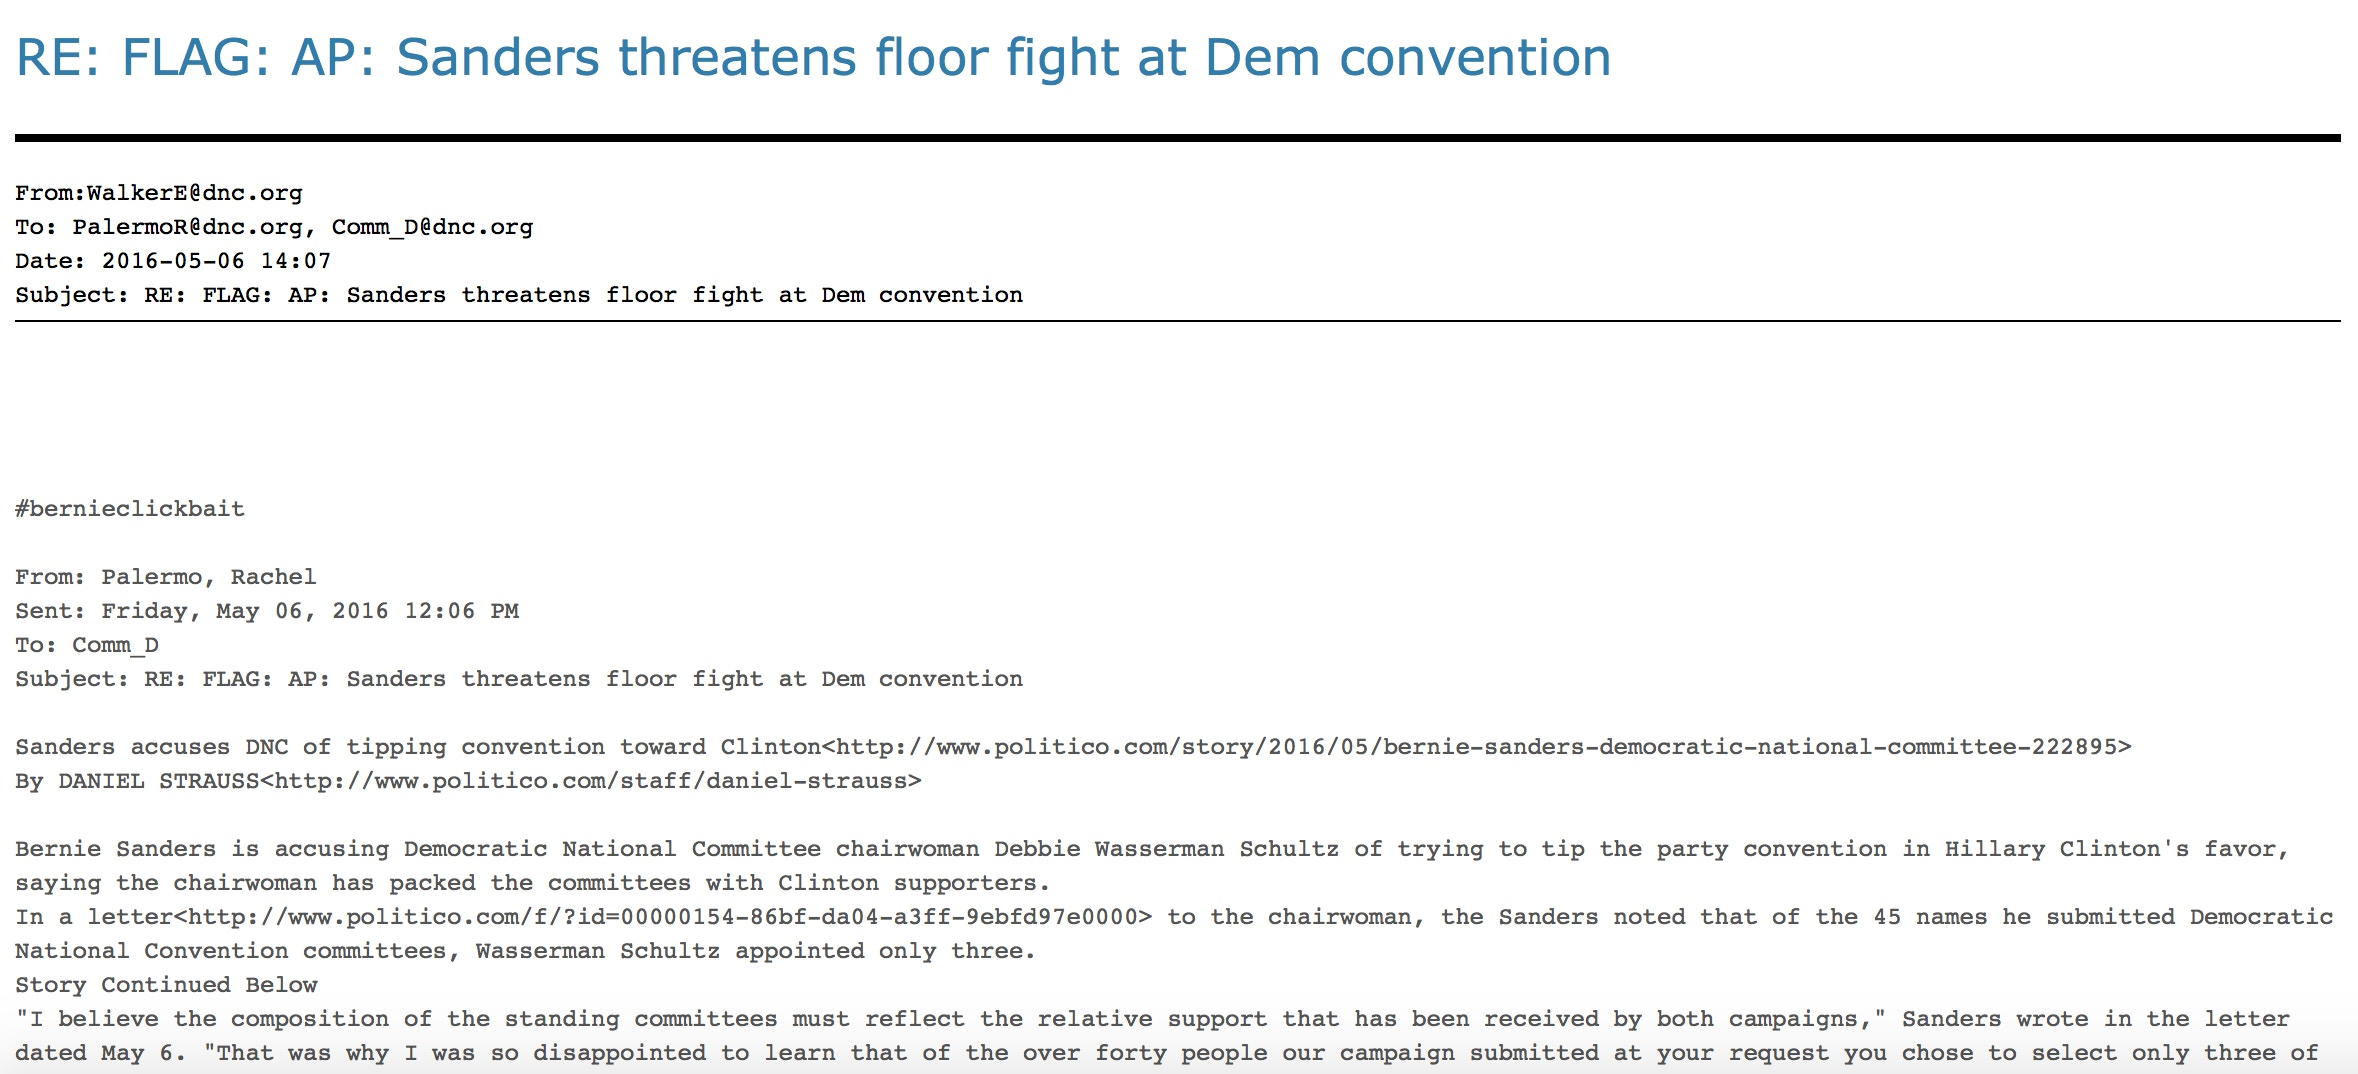 The Emails Also Show Internal Pushback On Major Sanders Causes Such As Holding More Debates And Ending Superdelegates